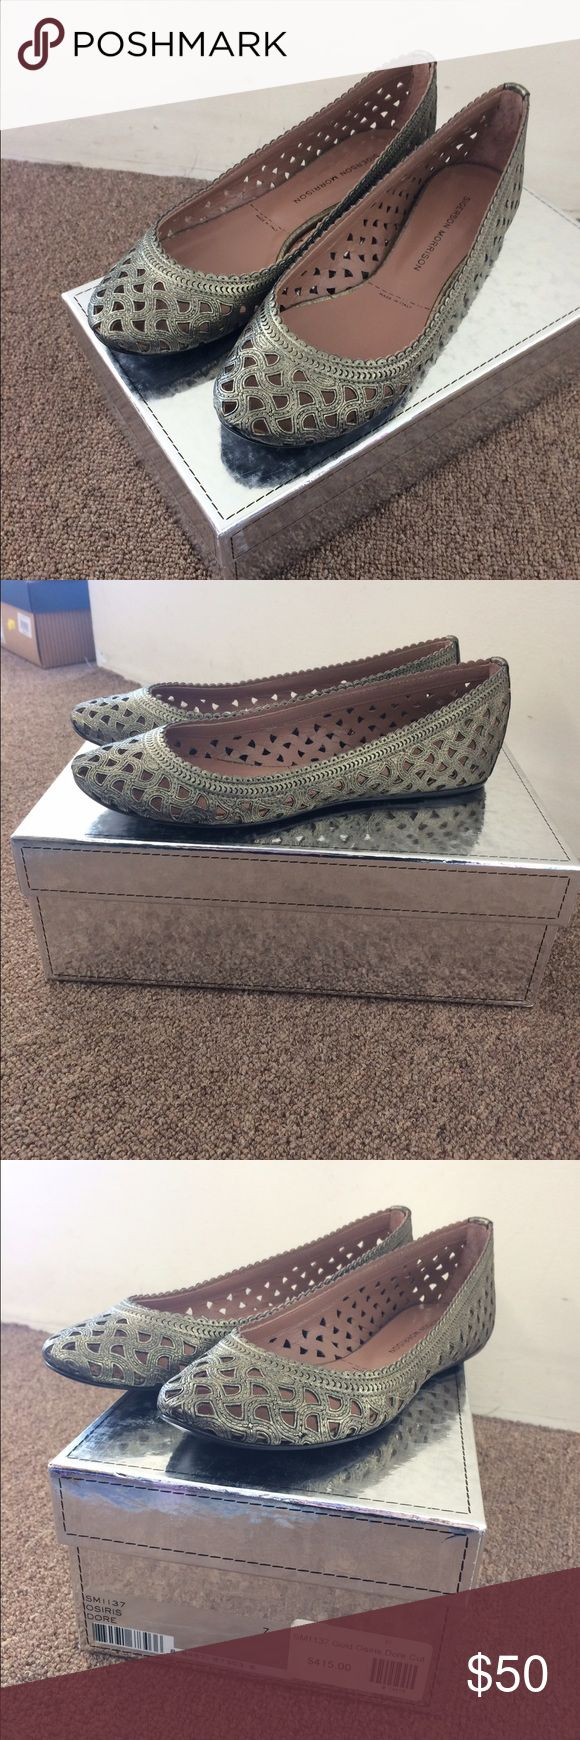 Sigerson Morrison flats size 7 Sigerson Morrison Gold Osiris Dore Cut, size 7, new in box, never worn Sigerson Morrison Shoes Flats & Loafers